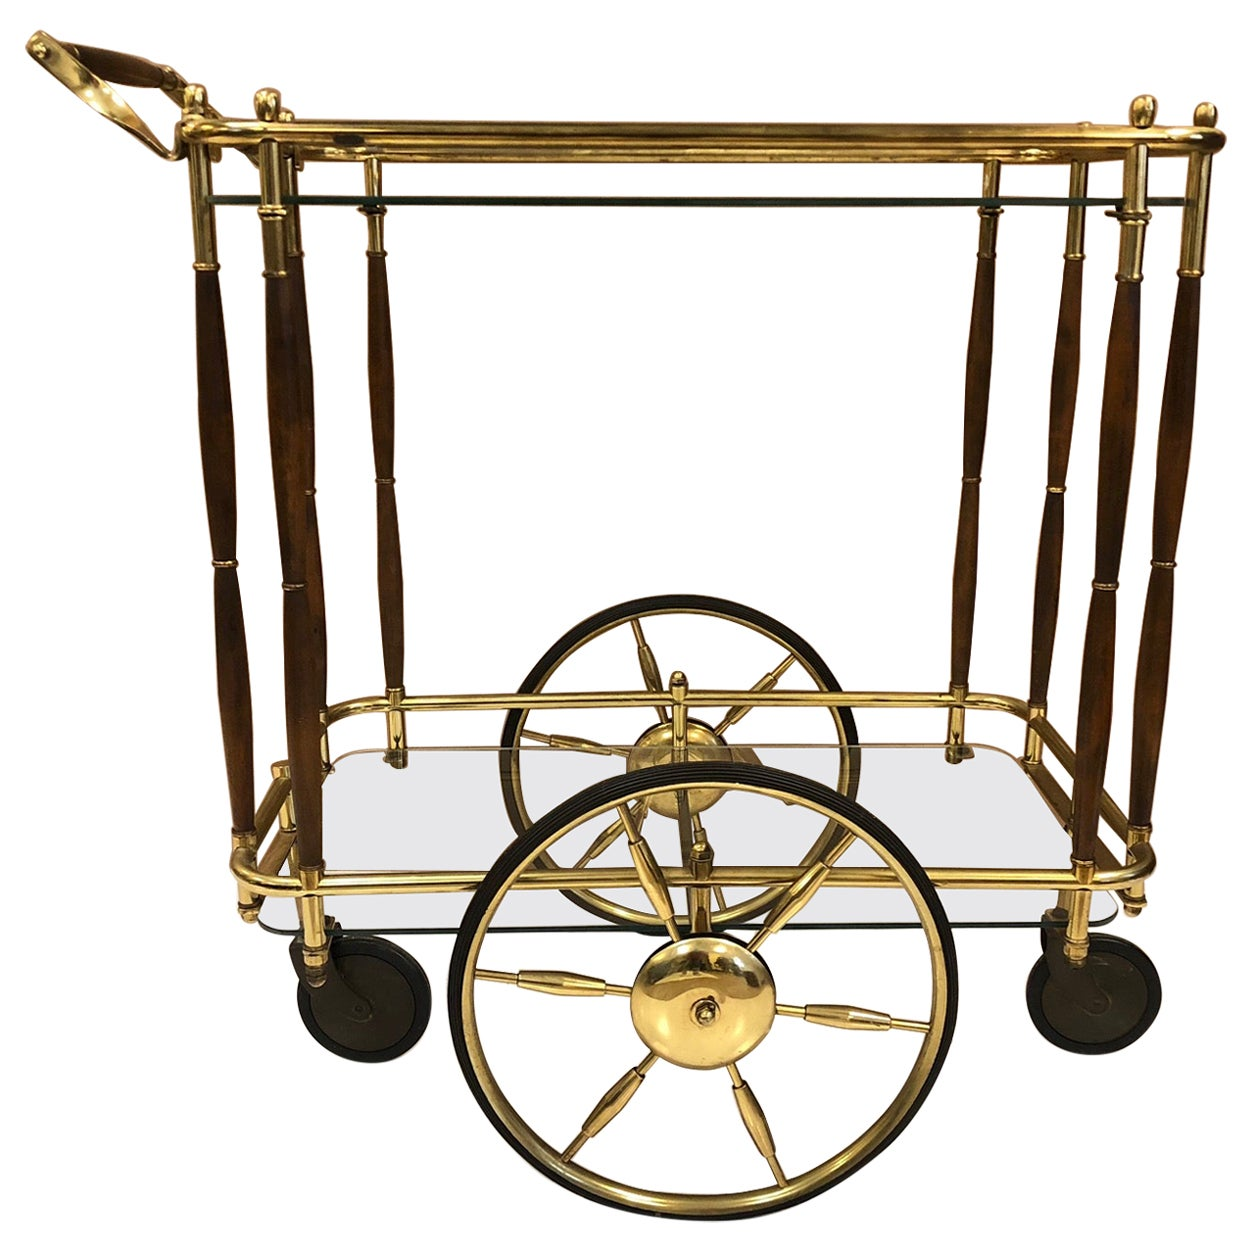 1960s Brass and Walnut Two-Tier Bar Cart